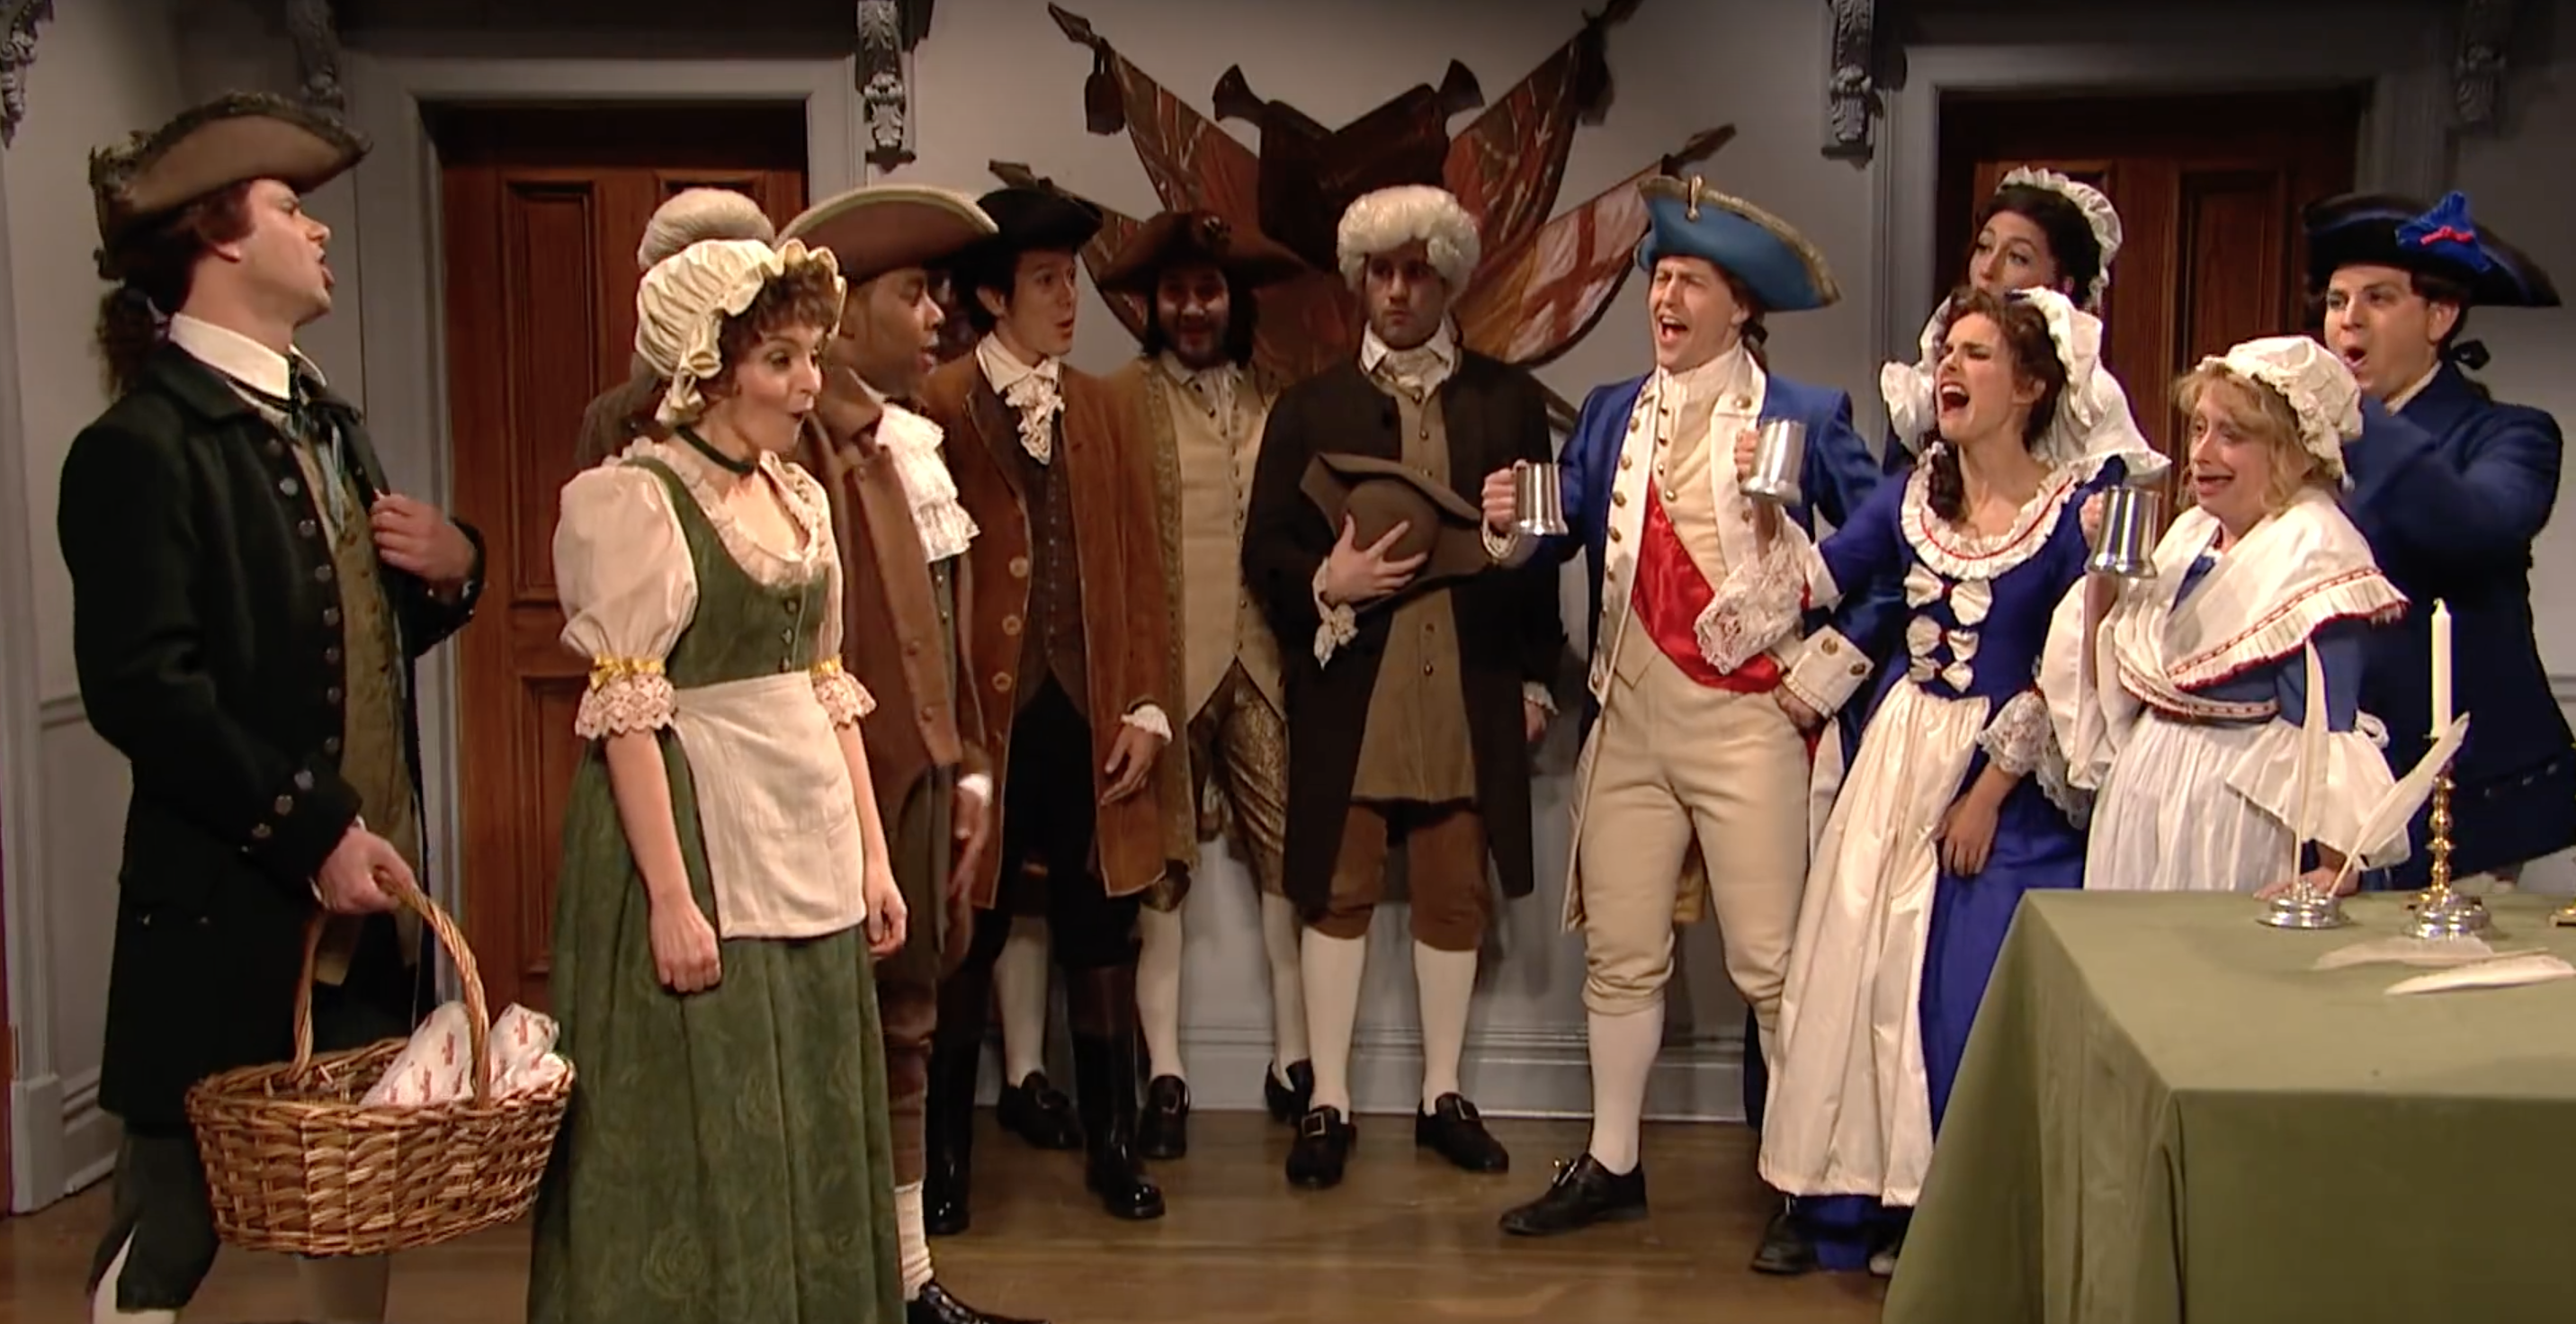 SNL: Tina Fey and Rachel Dratch star in colonial Super Bowl send-up